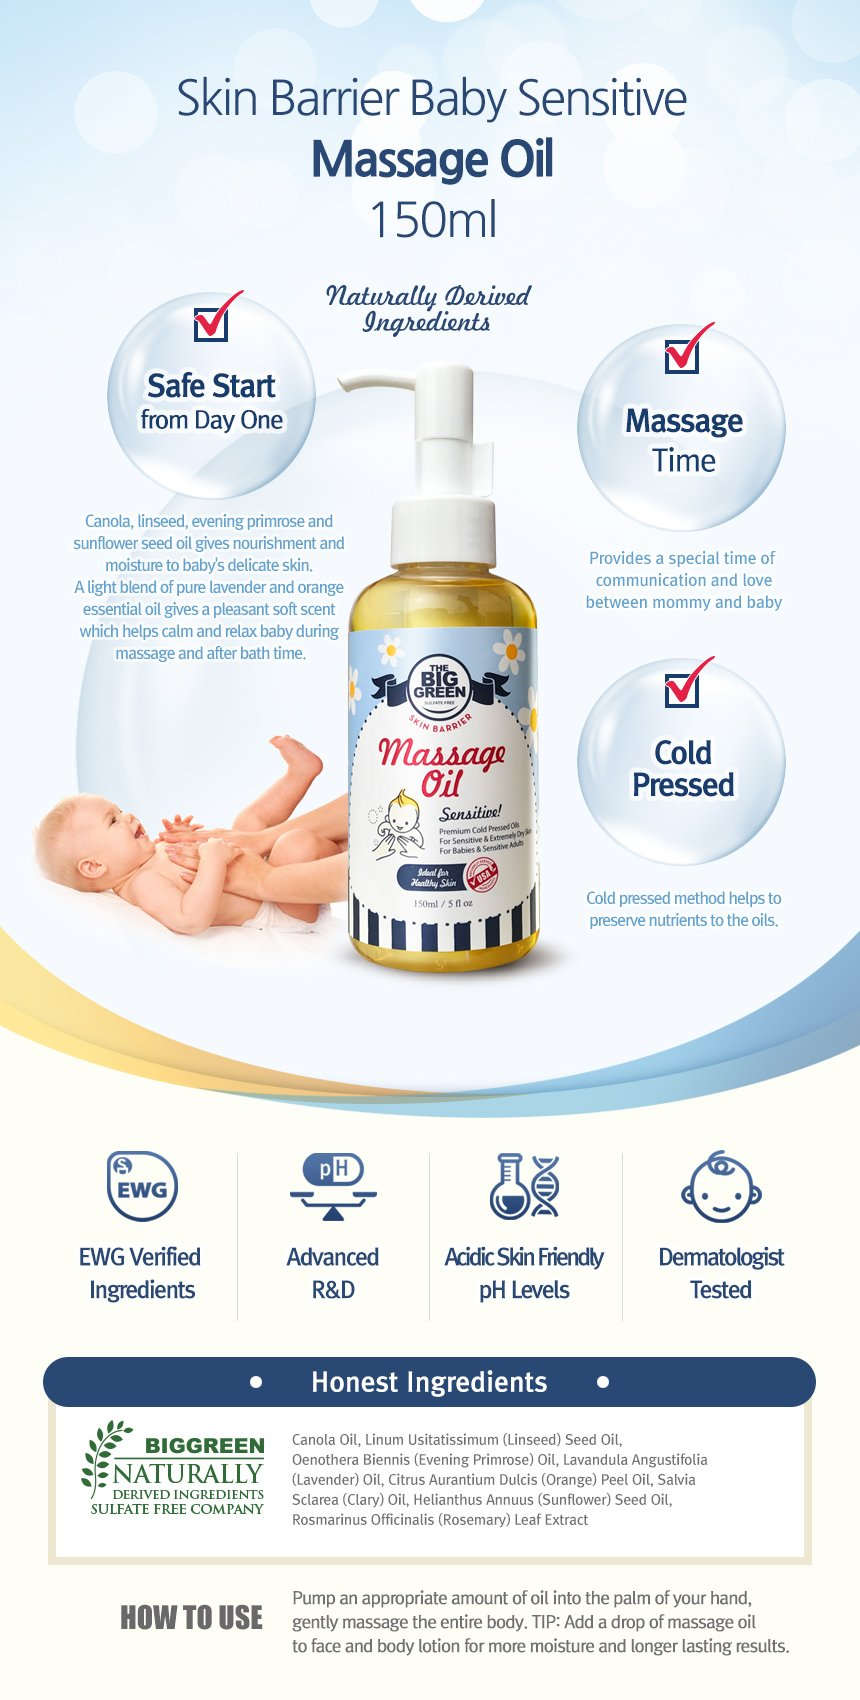 Big Green Sensitive Baby Massage Oil 4.5 fl oz-All Natural-Plant Based Ingredients-Cold Pressed-Non Toxic-No Mineral Oil-All Skin Types-Lavender Essential Oil by BIGGREEN (Image #3)